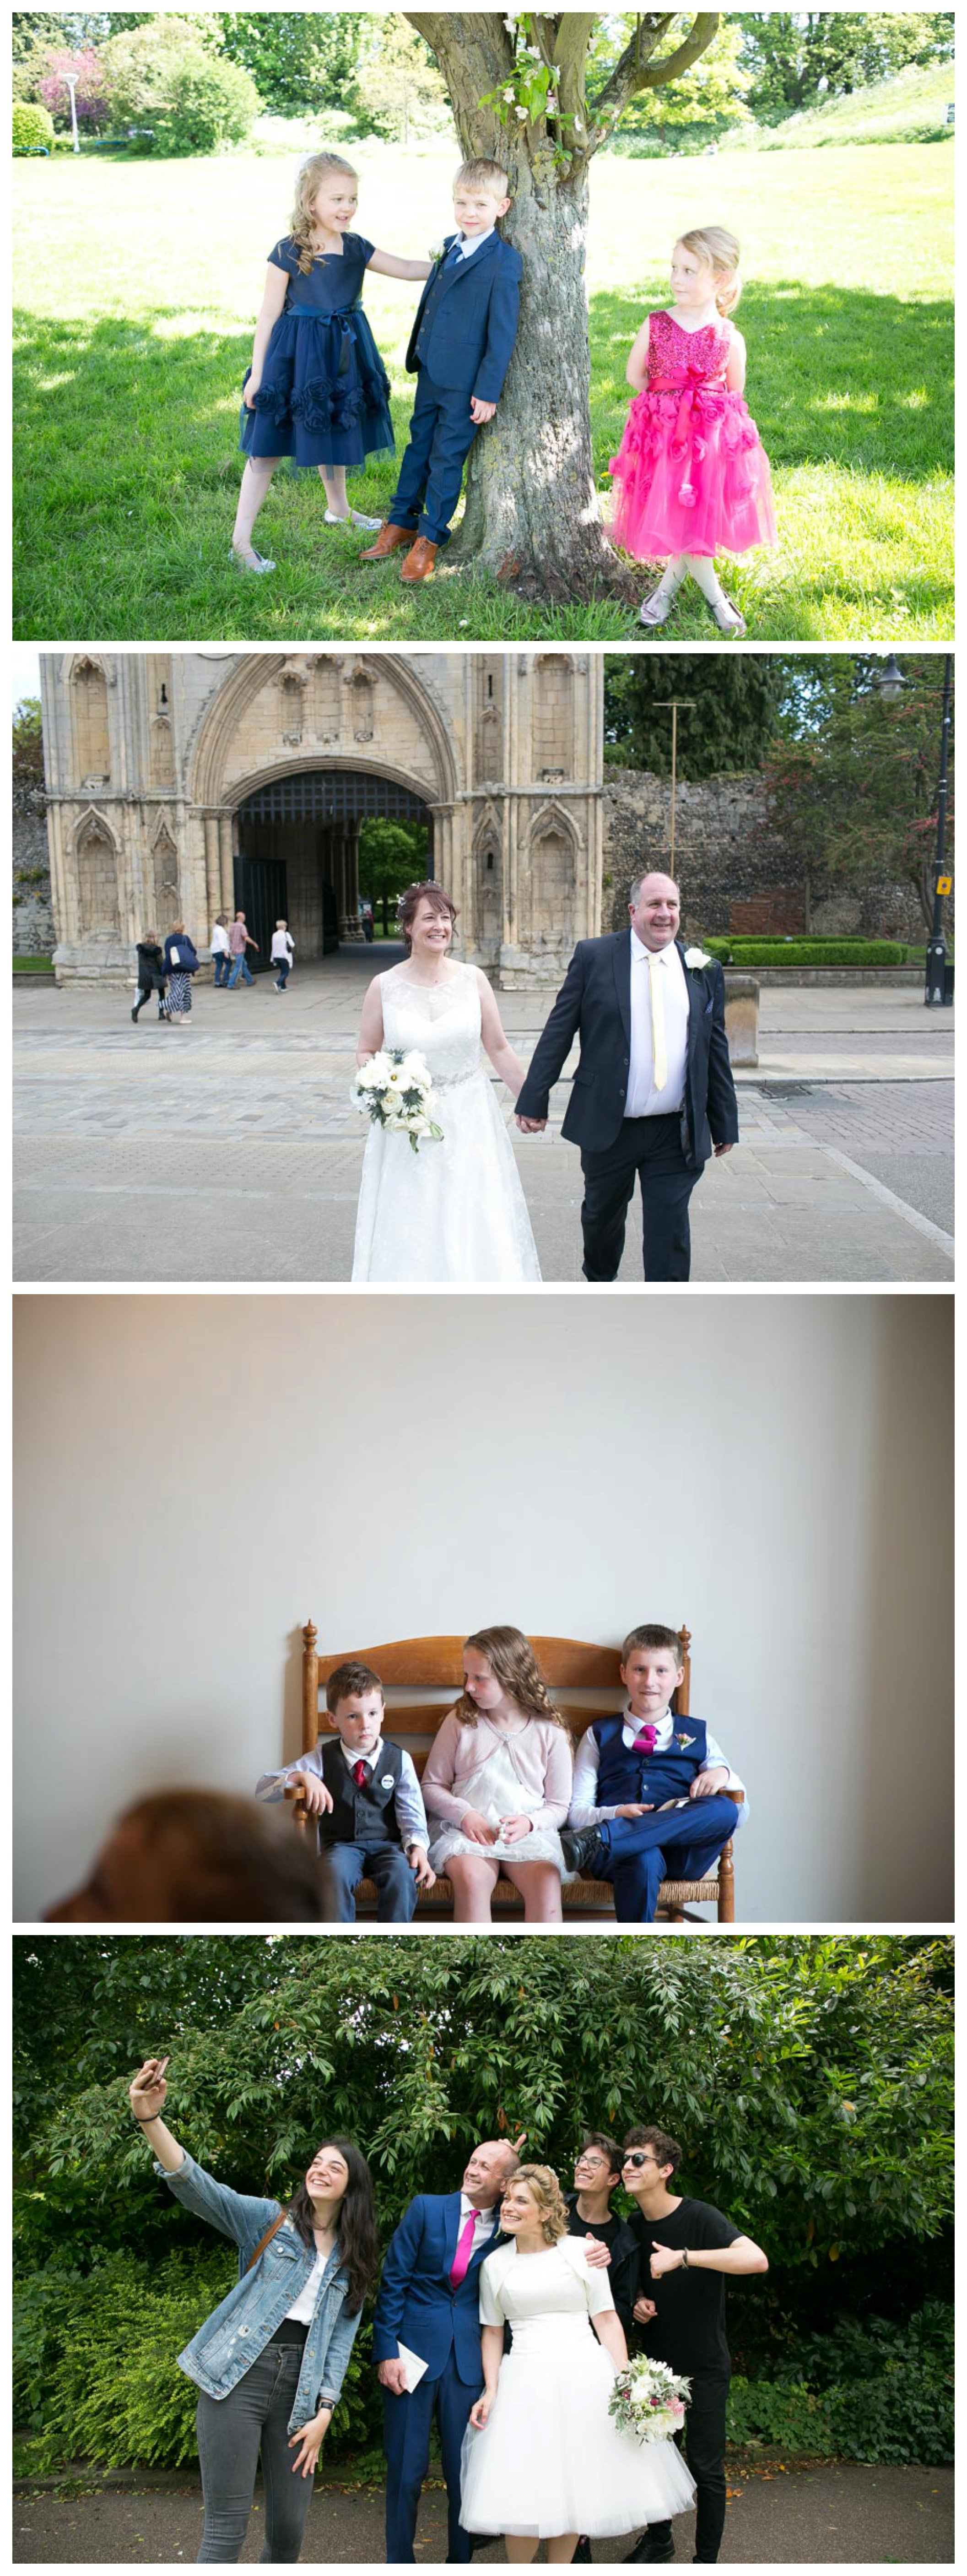 relxed intimate wedding photography in Bury St Edmunds